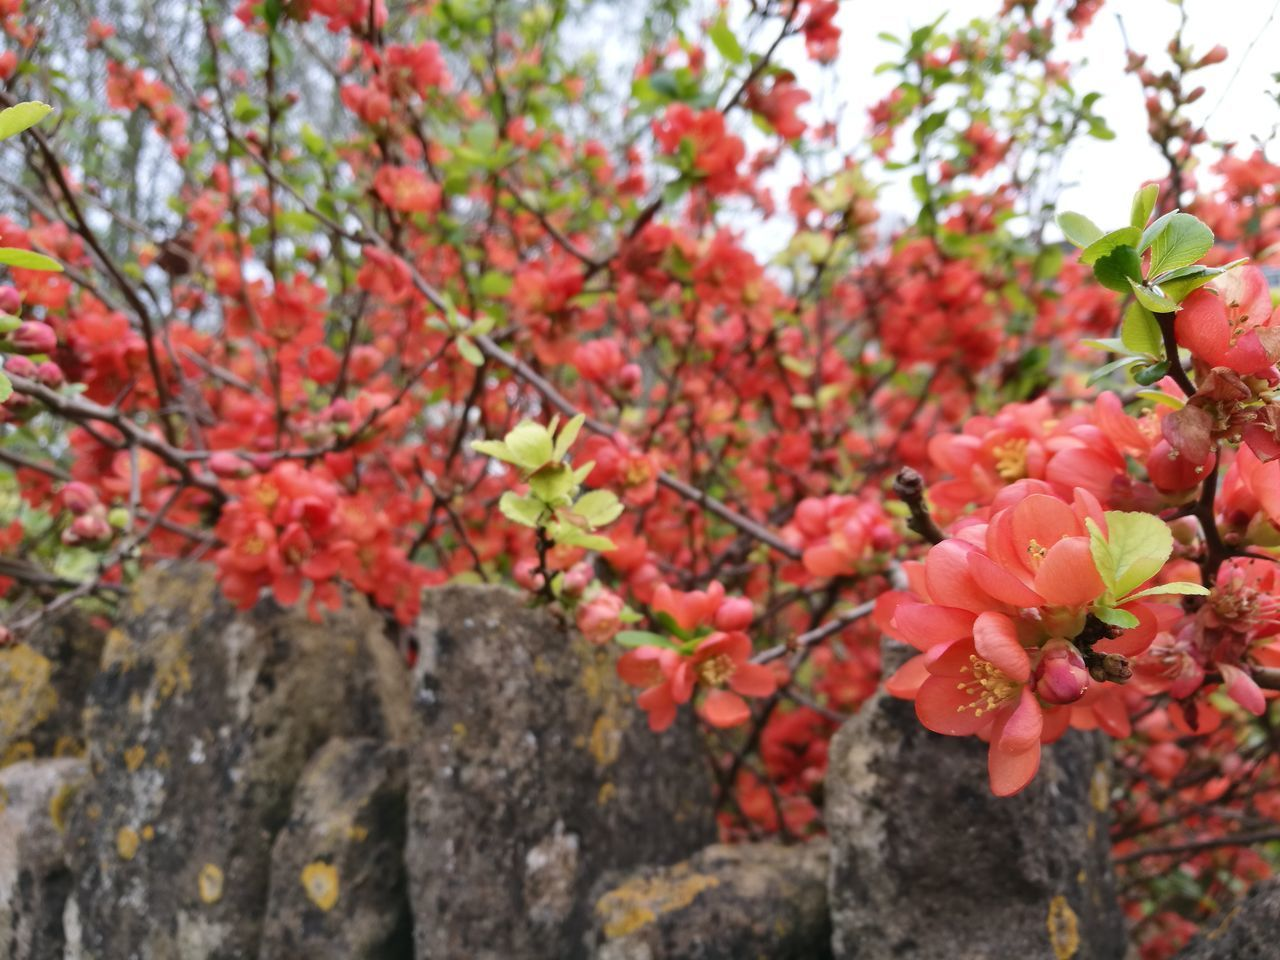 Japanese Quince Japanese Quince Branch Flower Red Flower Head Fragility Beauty In Nature Chaenomeles Spring Has Arrived Red Flowers NatureFlowers And Wall Springtime Spring Flowers Growth Tree Outdoors Freshness Close-up No People Day